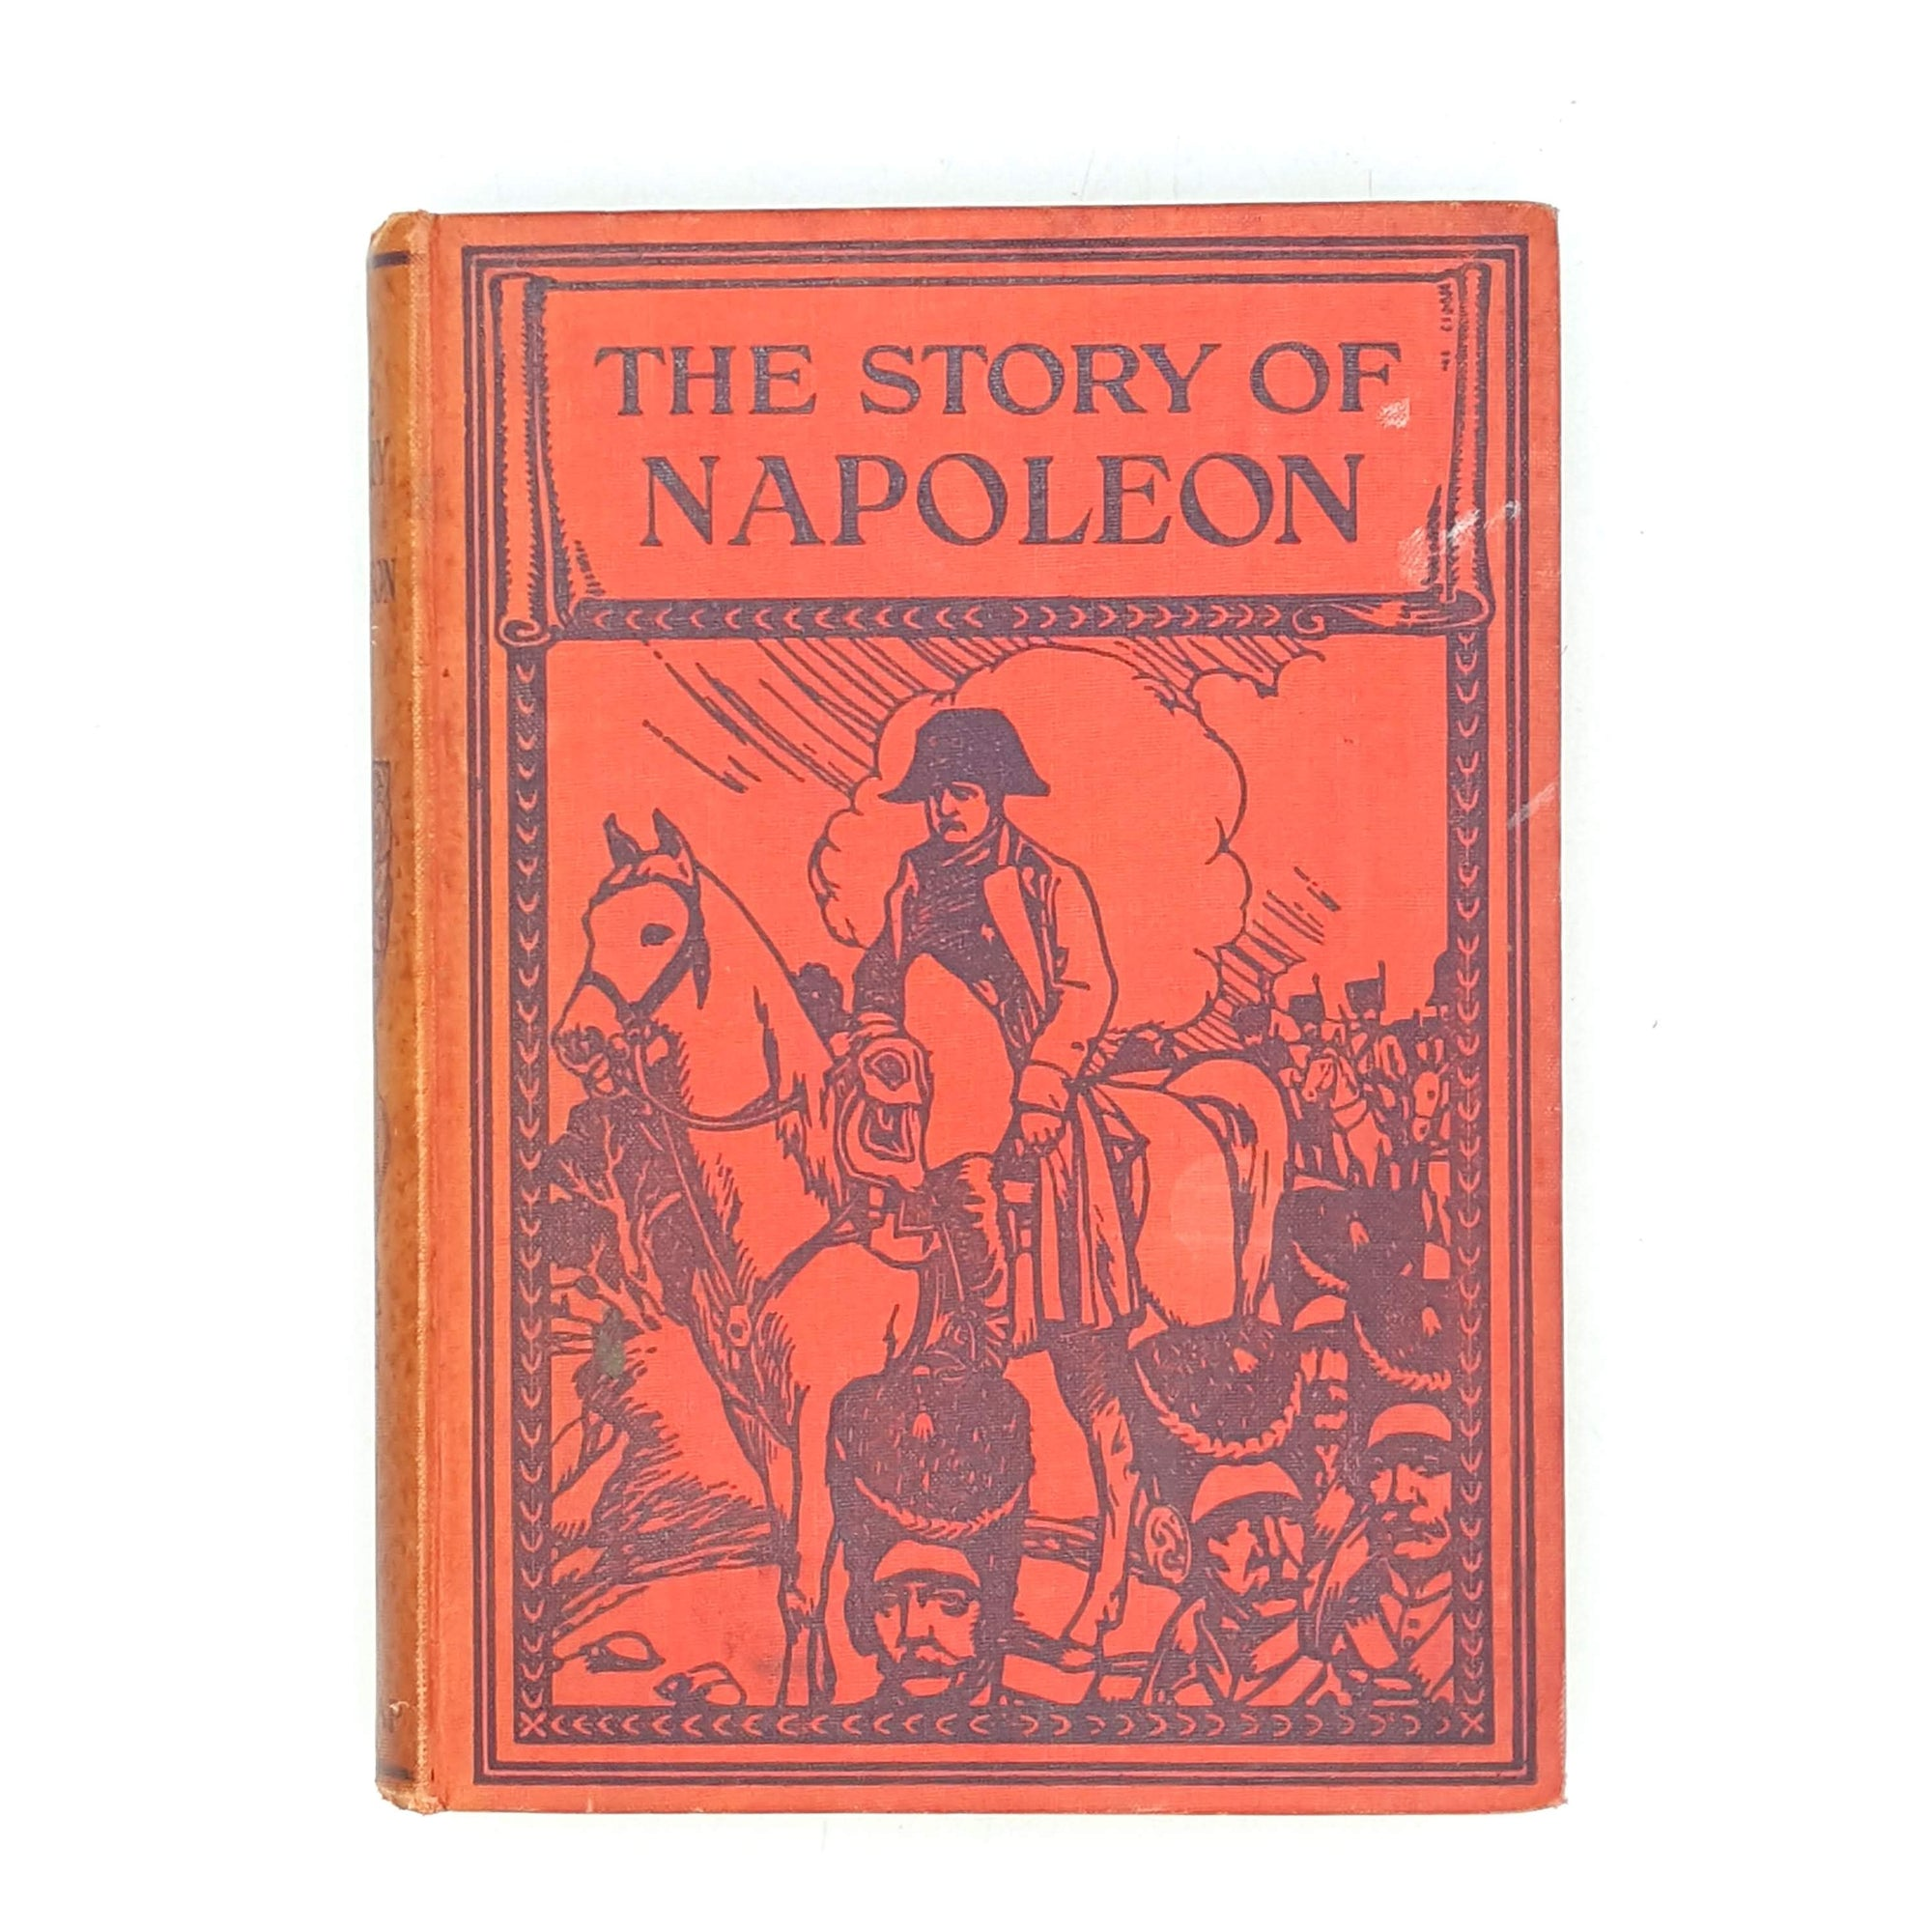 thrift-harrap-thrift-vintage-decorative-books-patterned-red-wheeler-story-of-napoleon-classics-old-antique-country-house-library-1911-